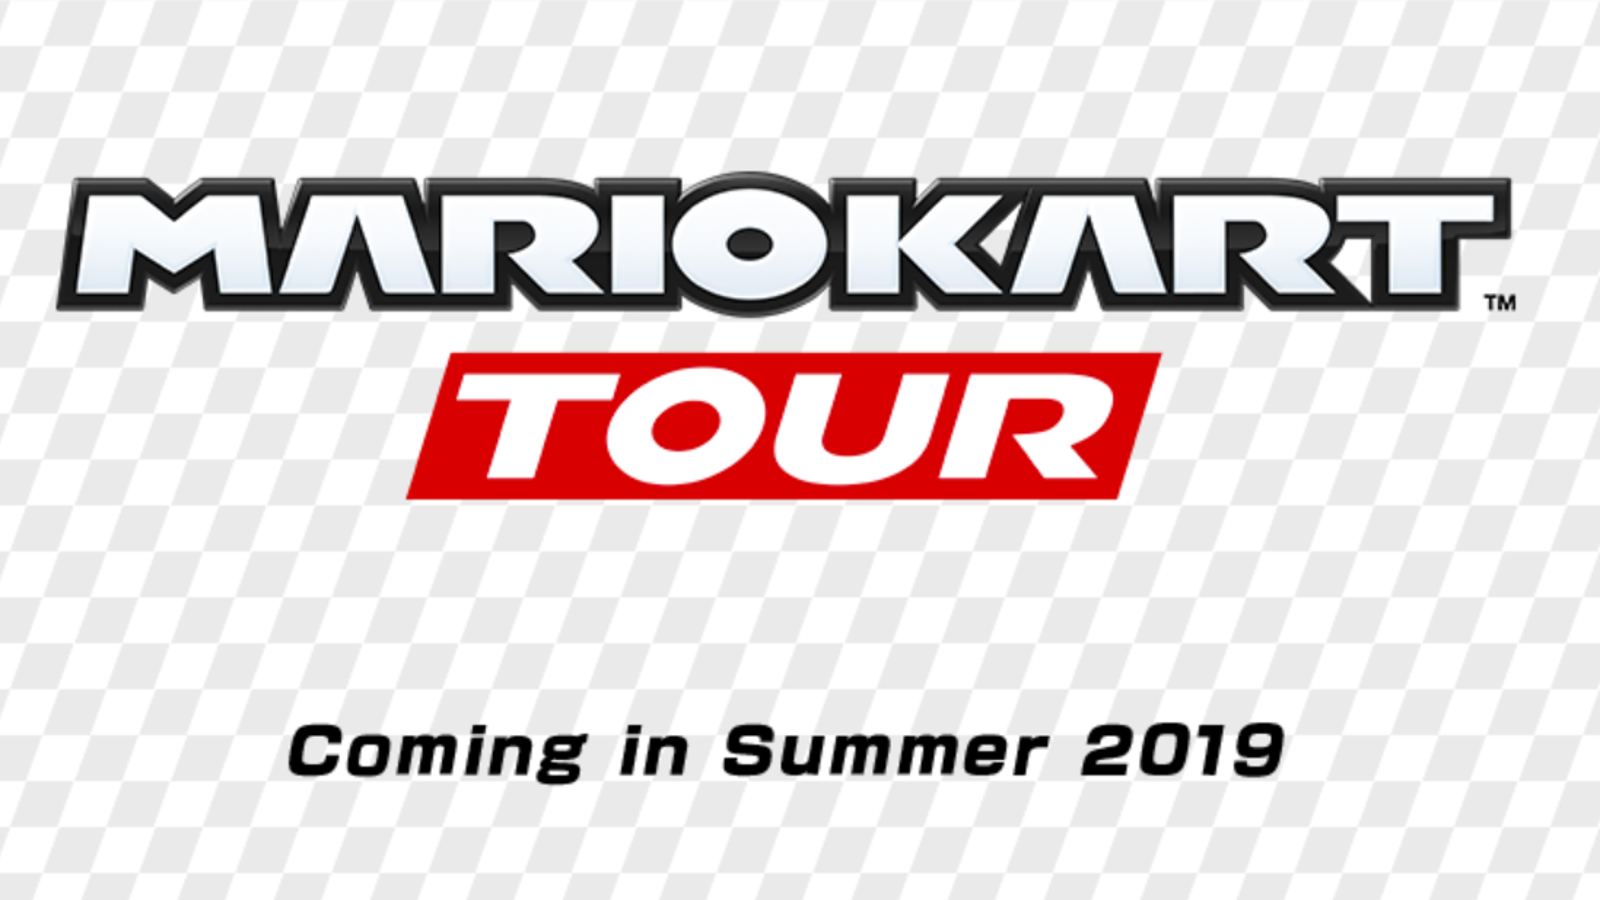 Sign Up for a Chance to Beta Test Mario Kart Tour on Your